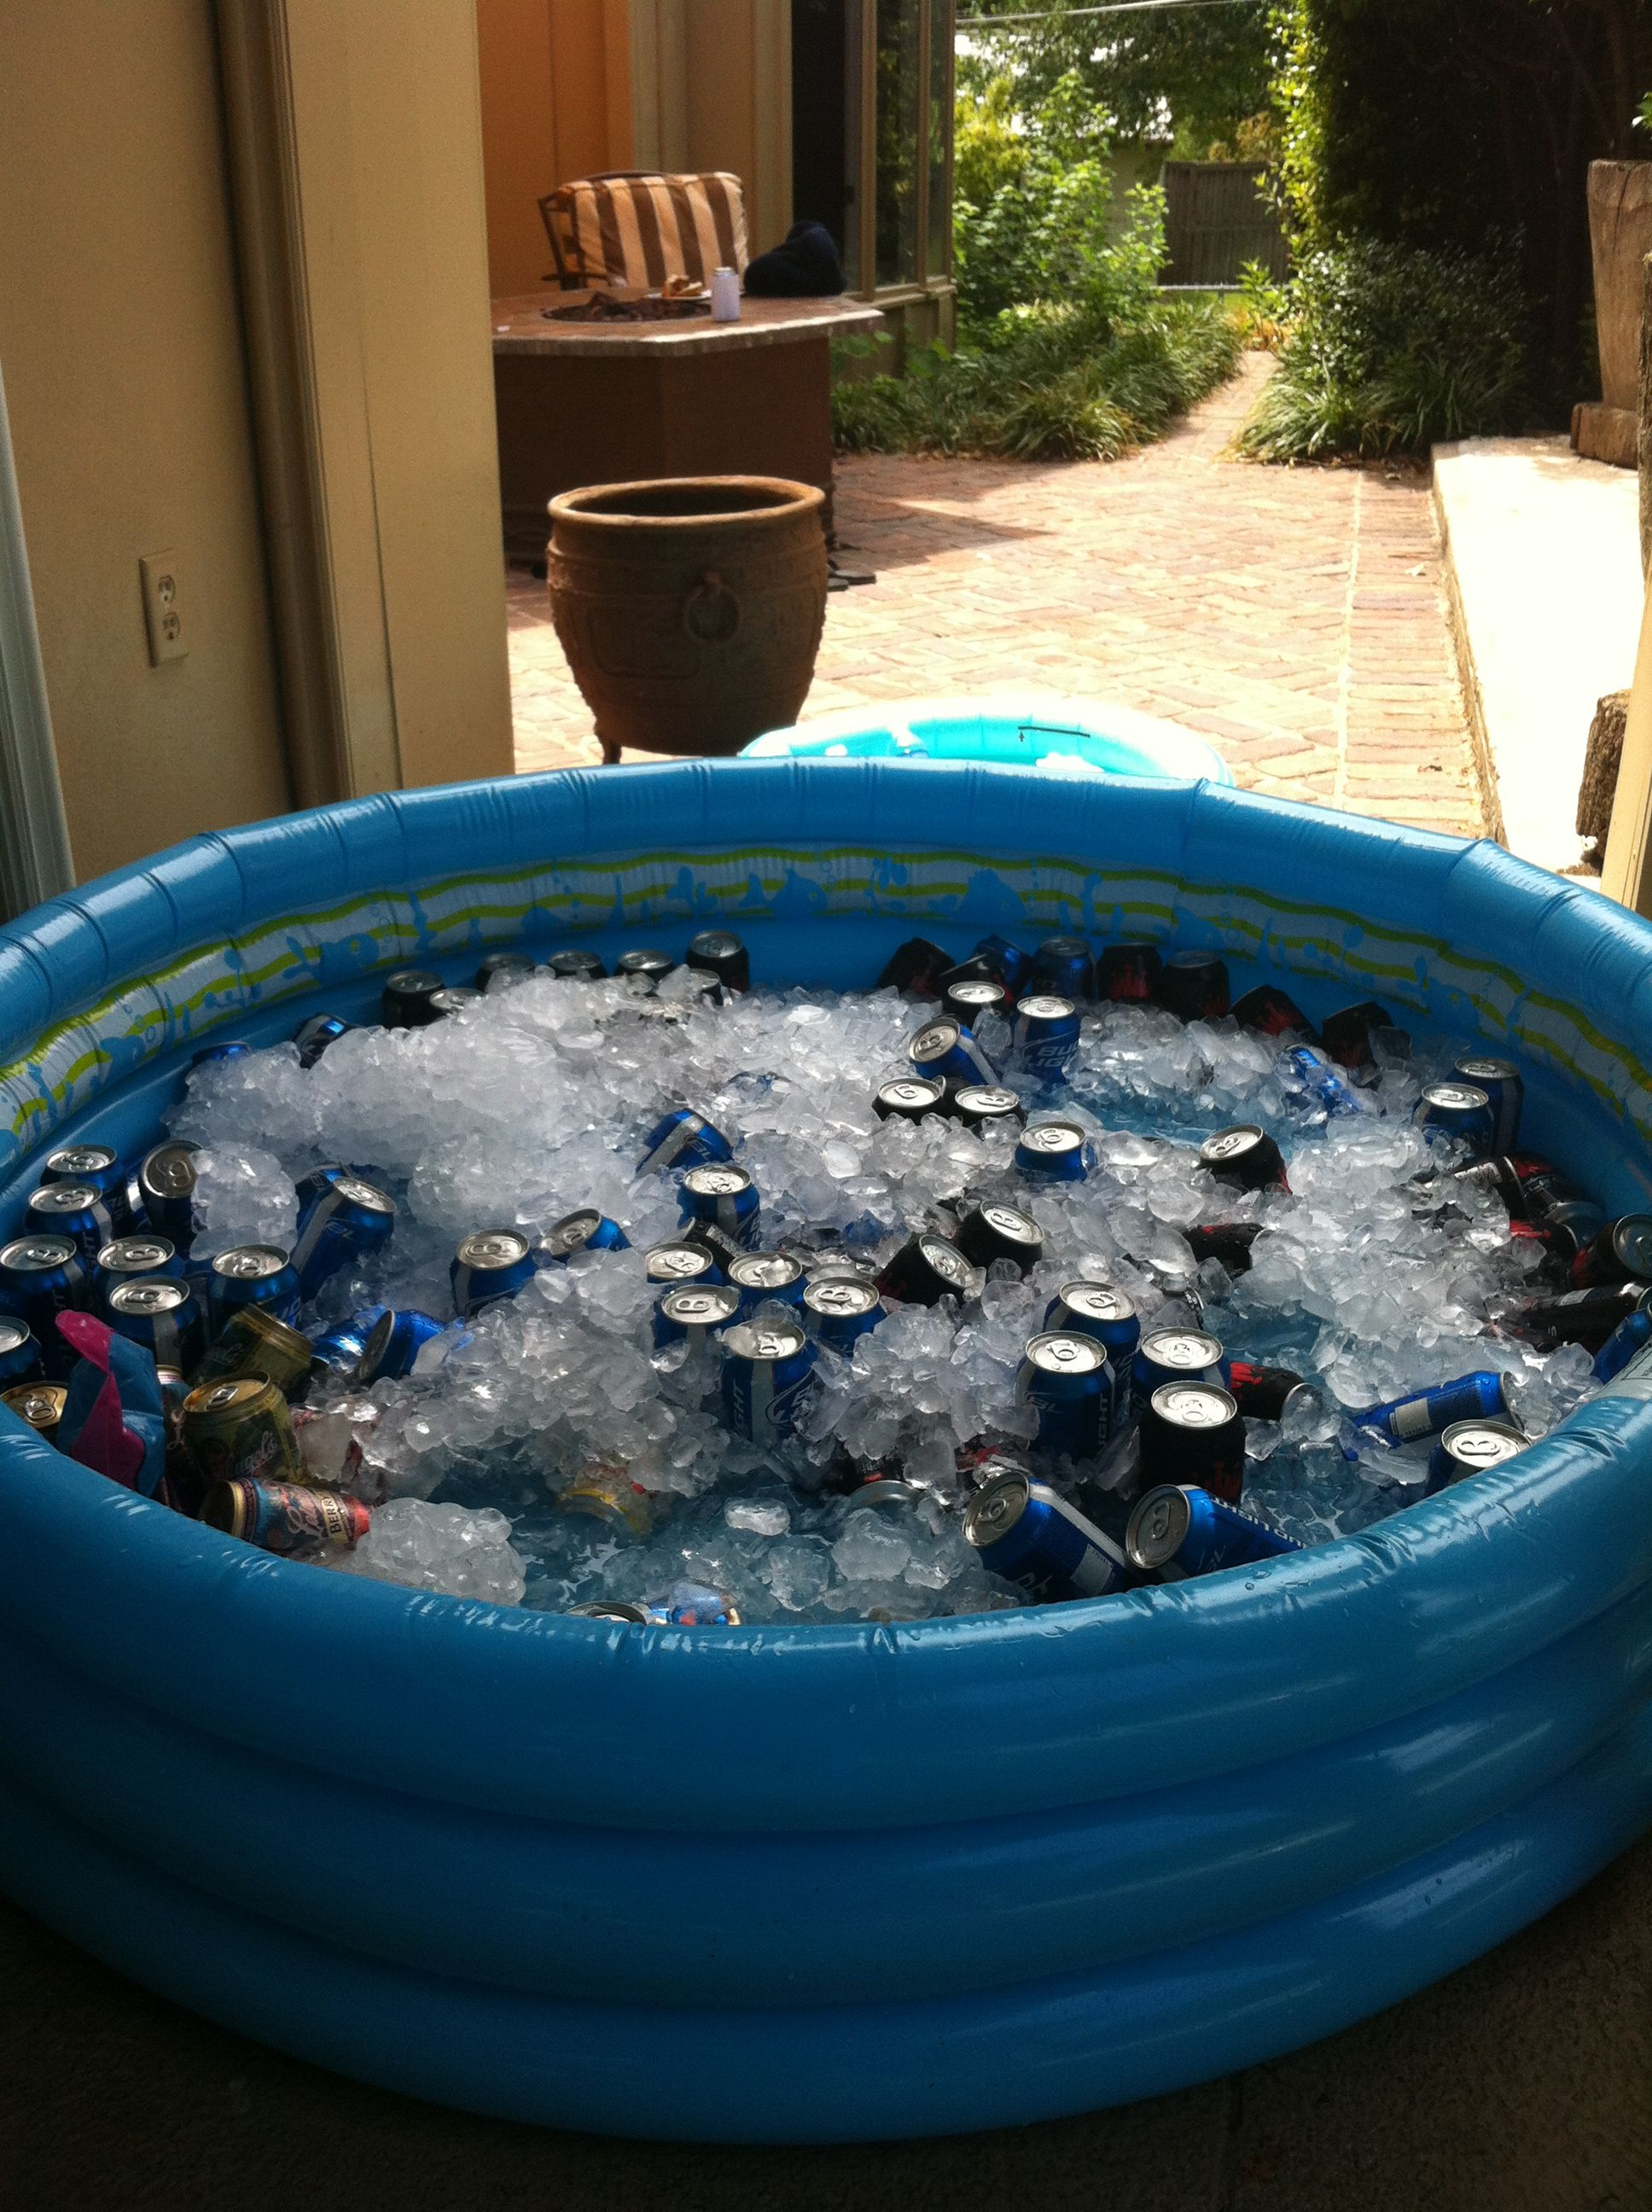 Pool party cooler! Visit poolcoolers.com for more info on ...